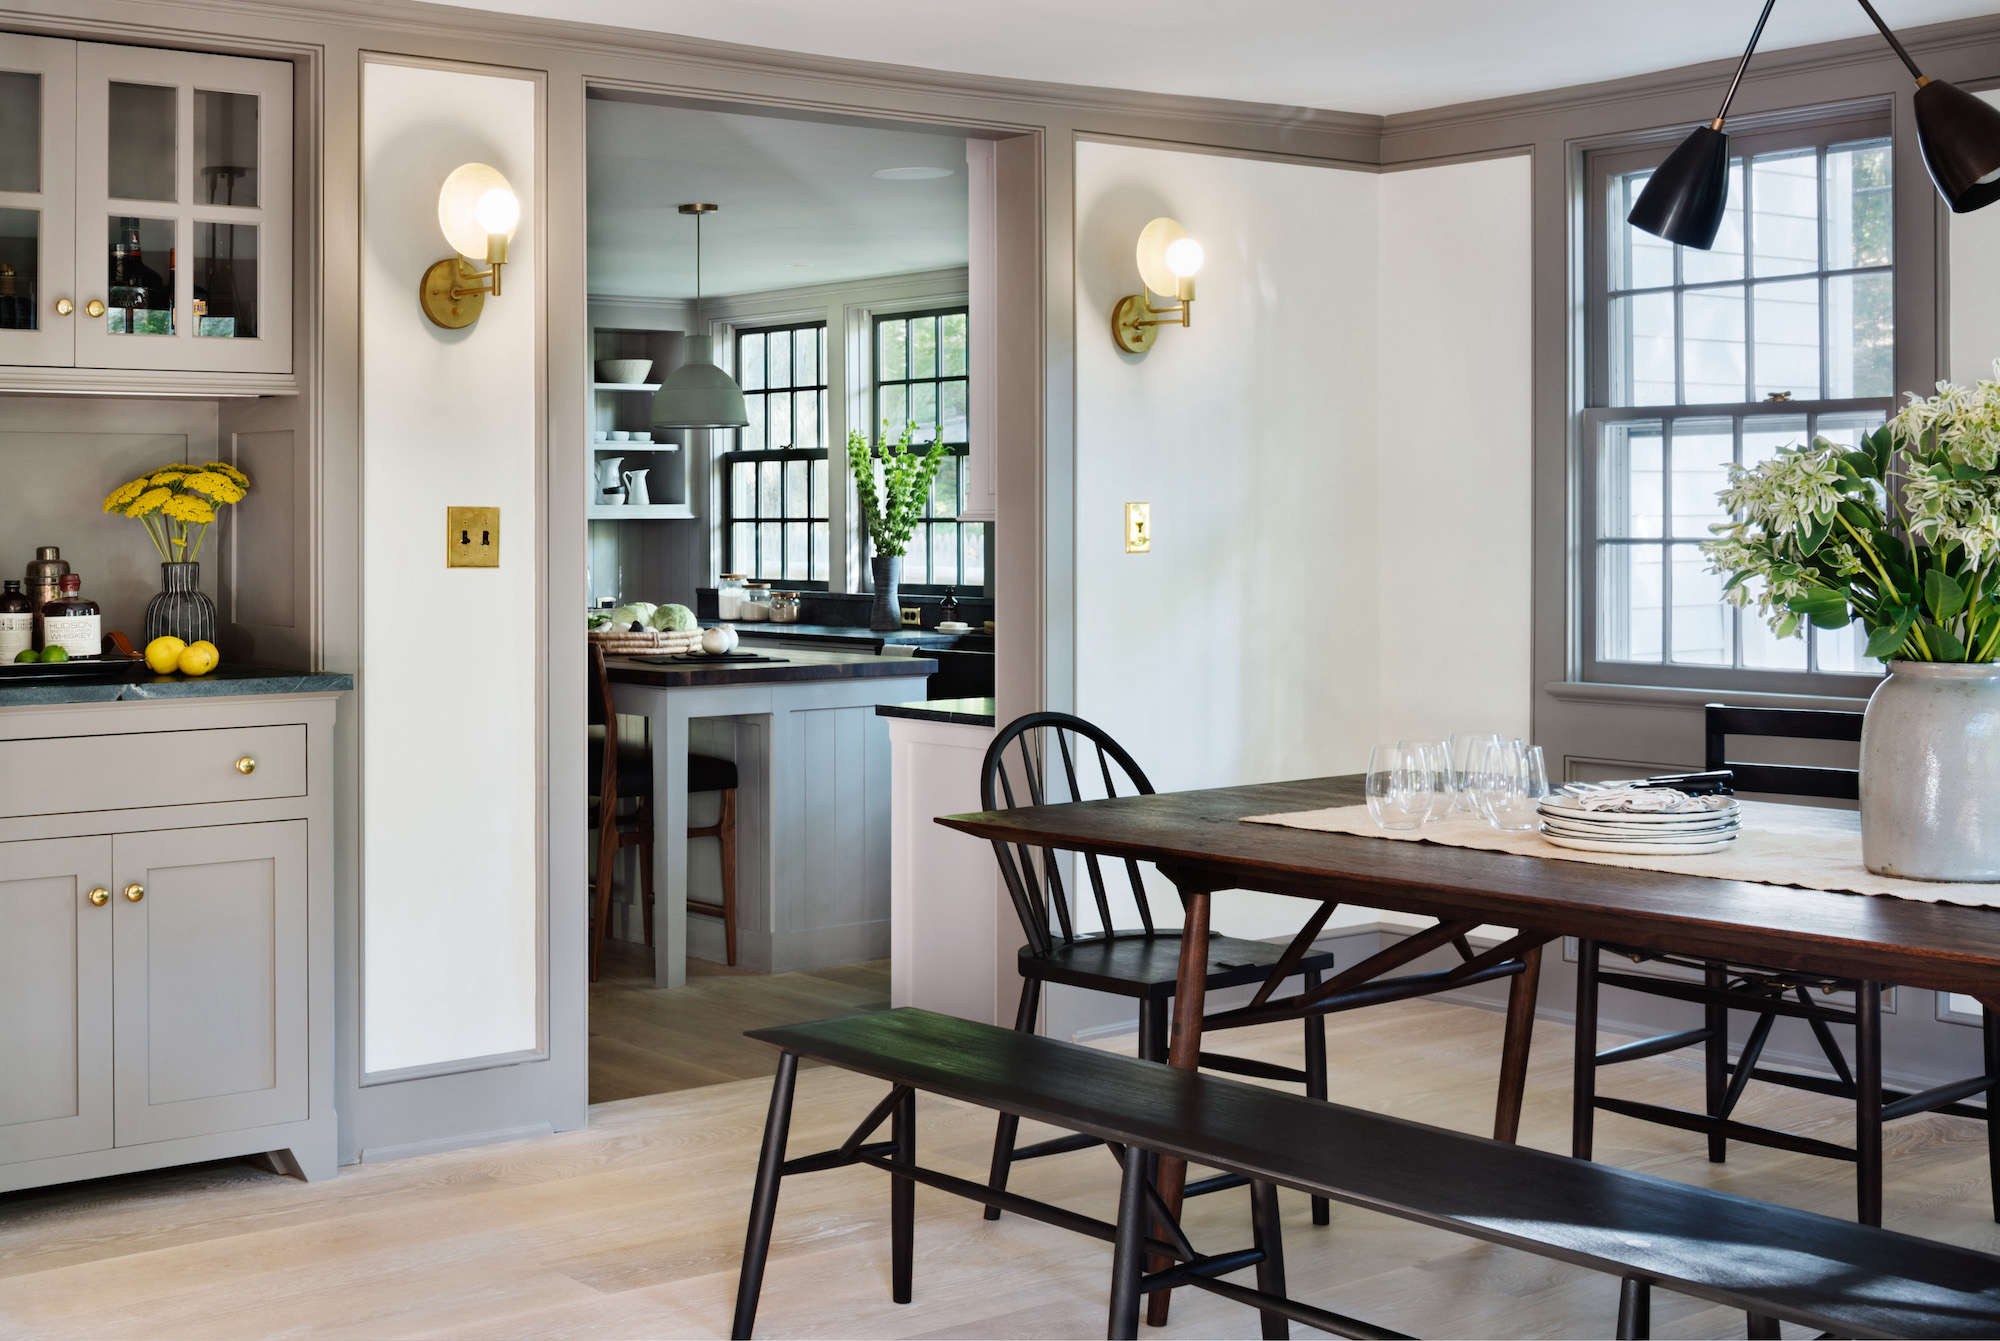 Architect Visit A Renovated Farmhouse in Bedford with